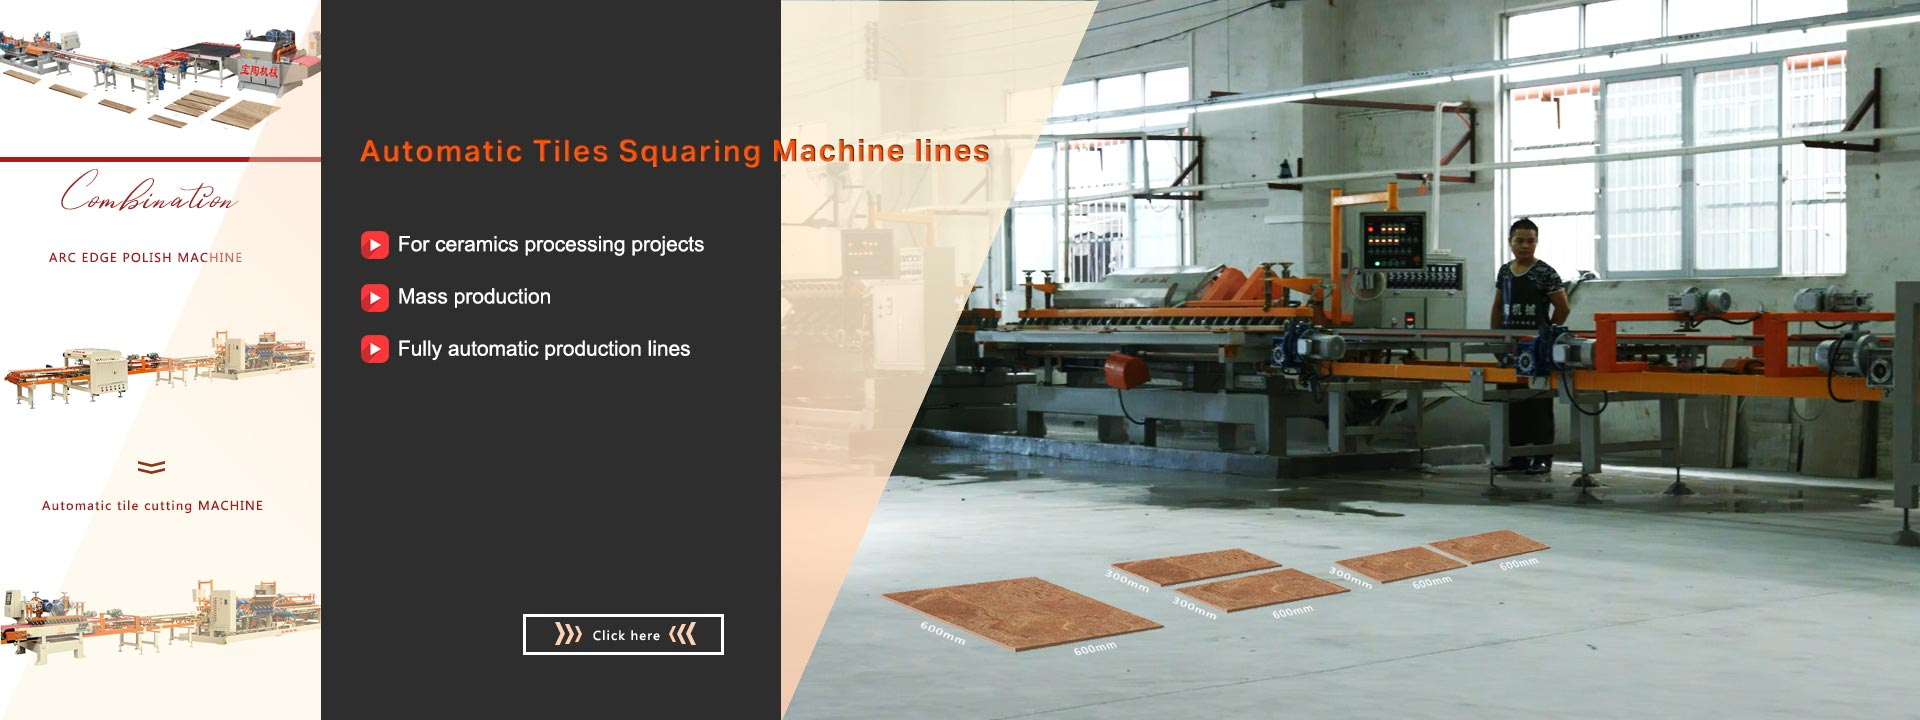 Tiles squaring machine lines For ceramics processing projects Mass production Fully automatic